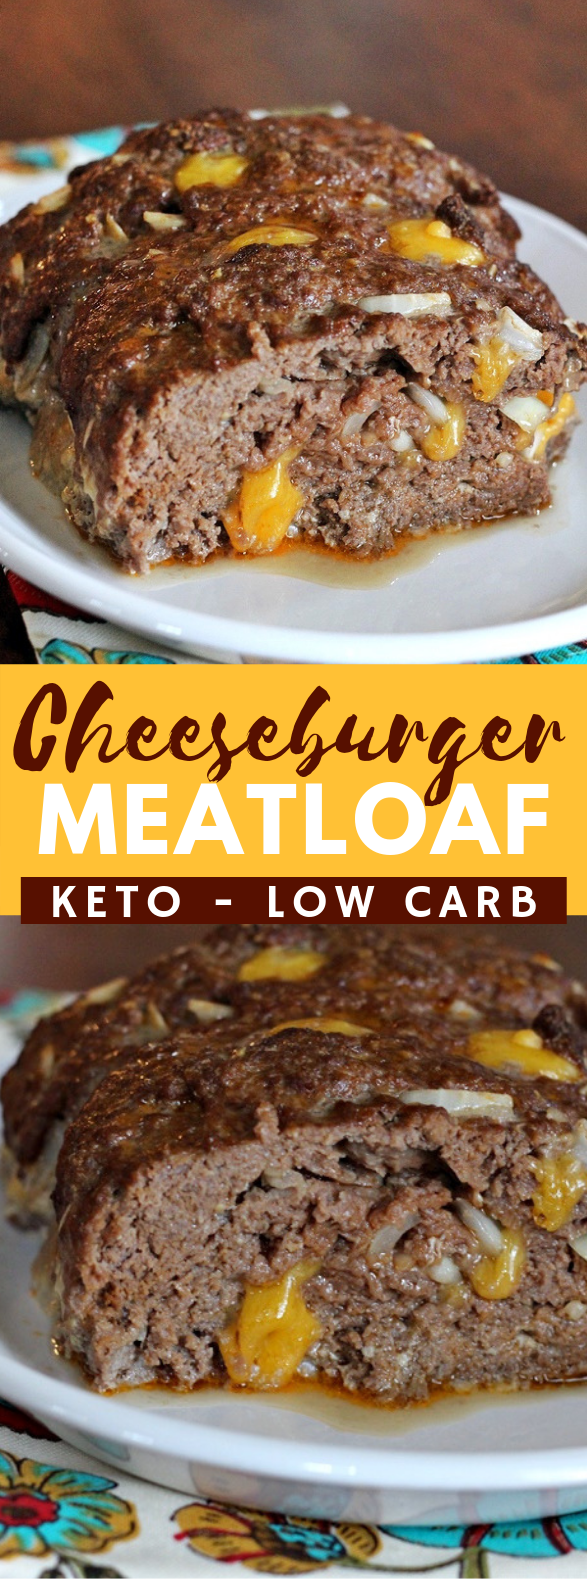 CHEESEBURGER MEATLOAF (KETO/LOW CARB) #diet #ketodiet